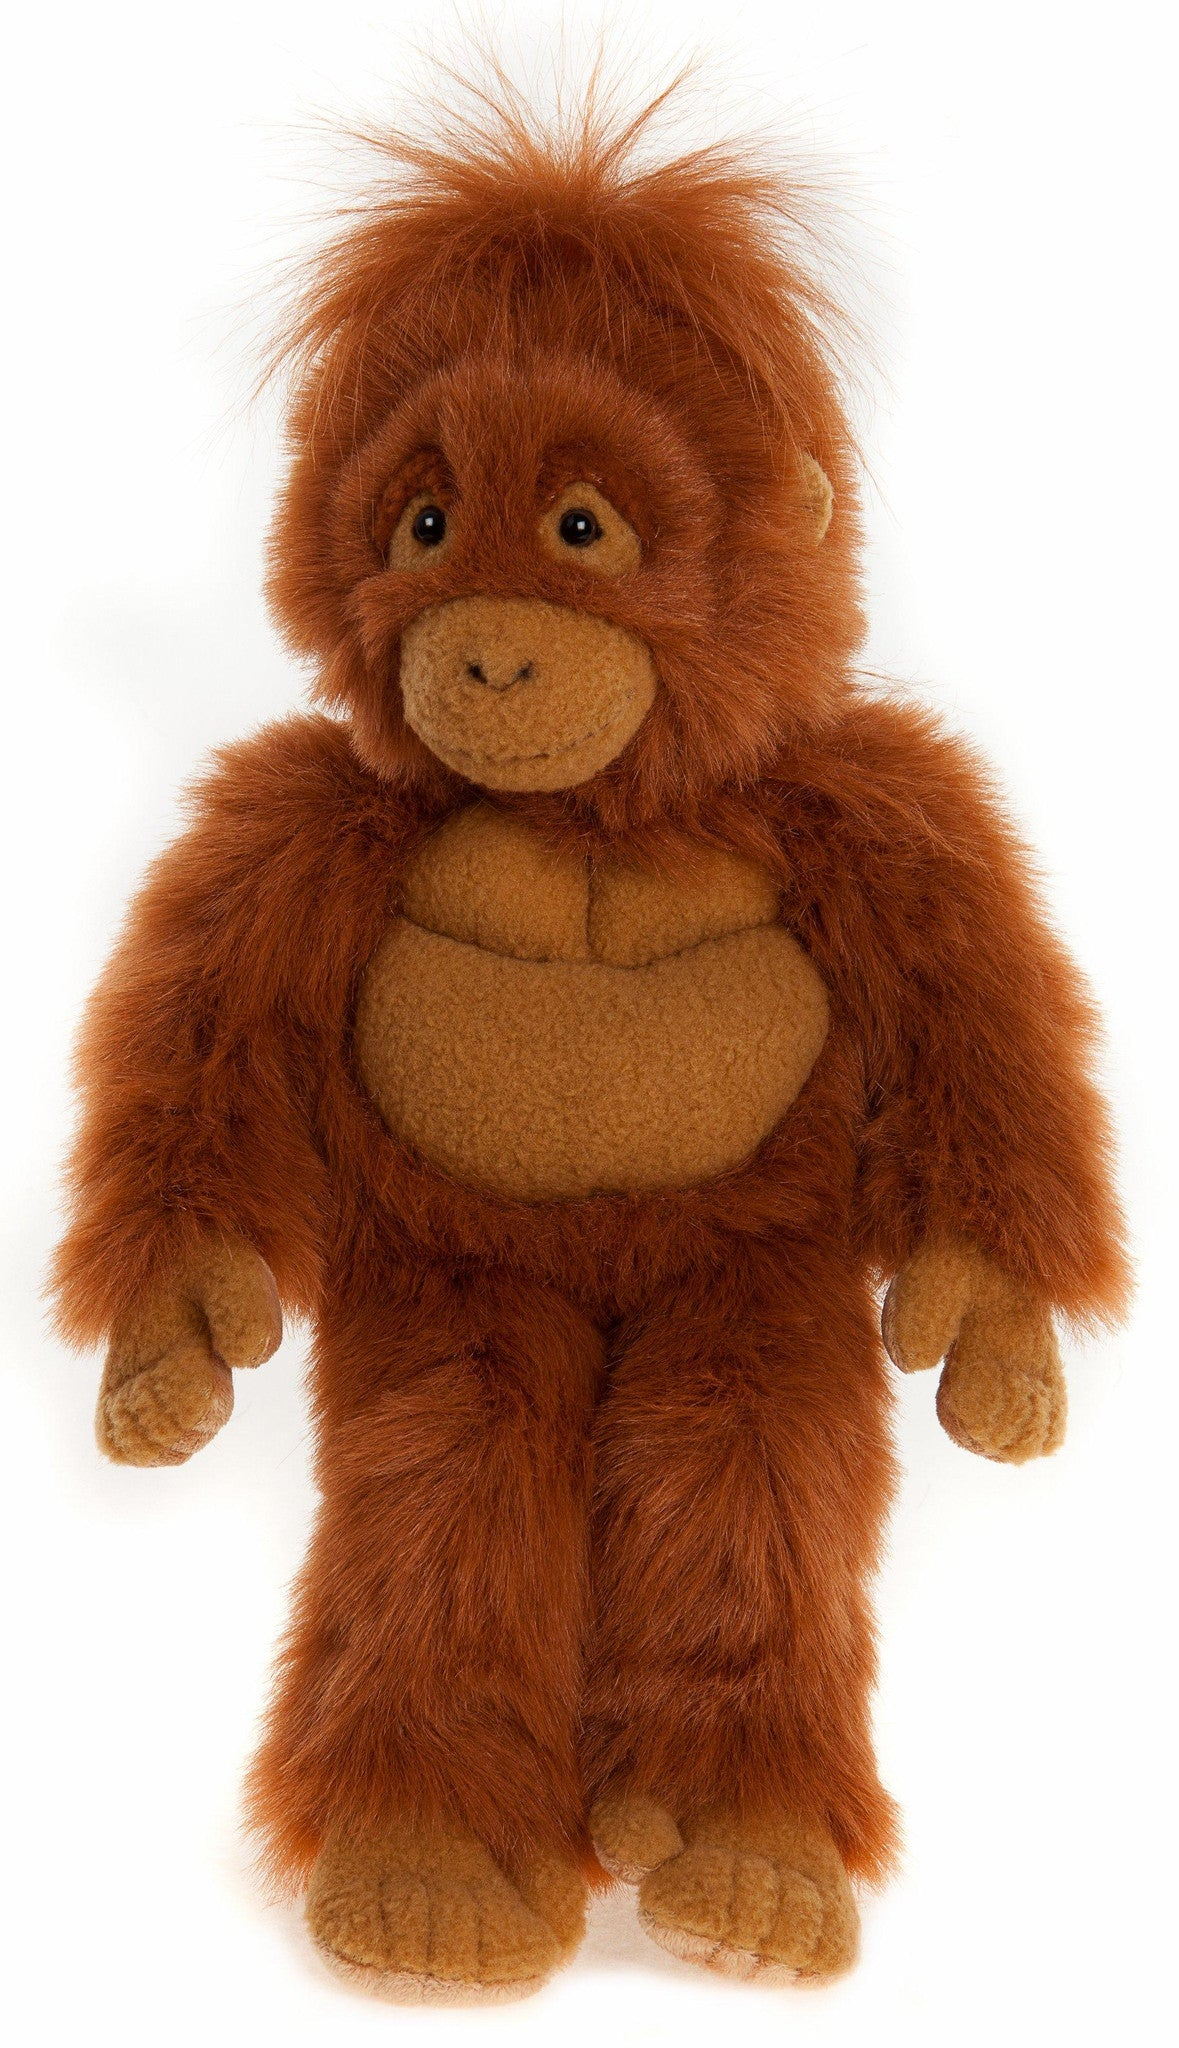 Myres Orangutan Charlie from Bears Bearhouse Collection